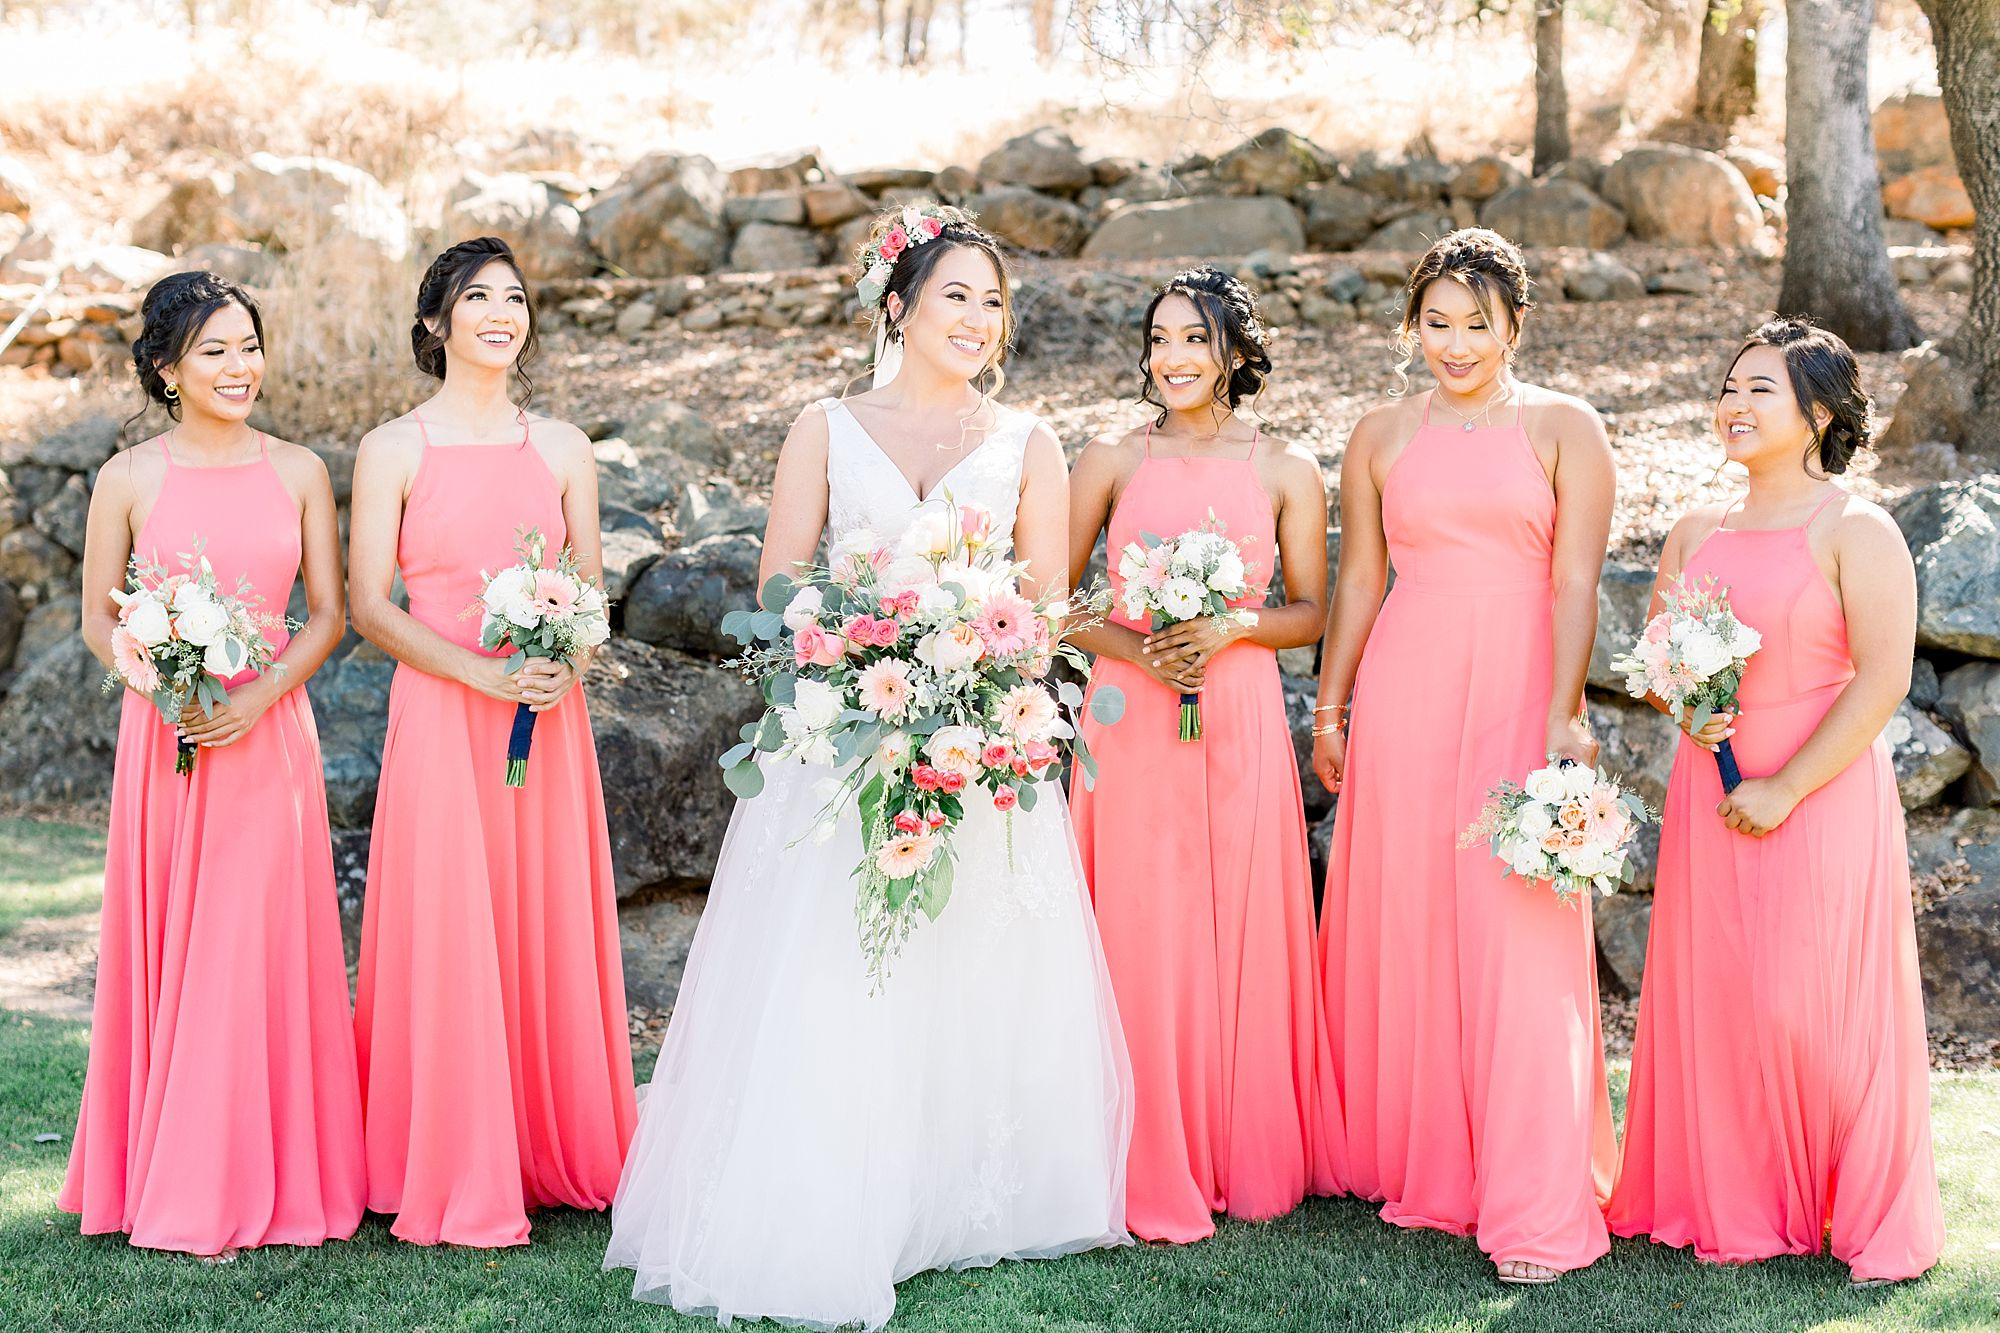 Auburn Valley Golf Club Wedding - Ashley Baumgartner - Auburn Wedding Photographer and Sacramento Wedding Photography_0018.jpg